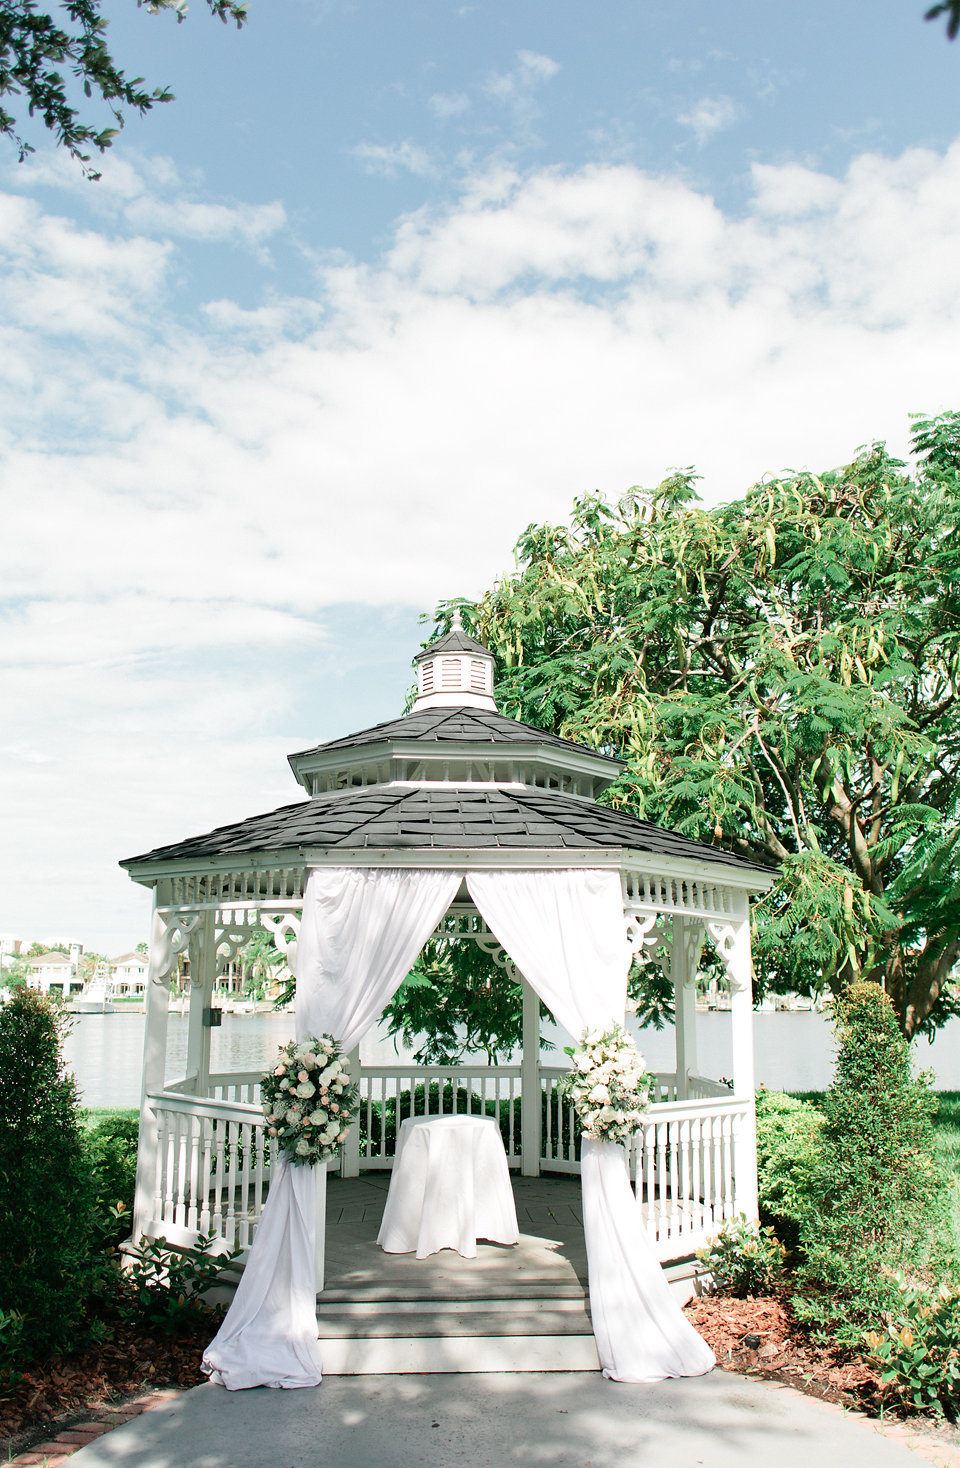 The garden gazebo was dressed with soft flowing fabric and floral tie backs.